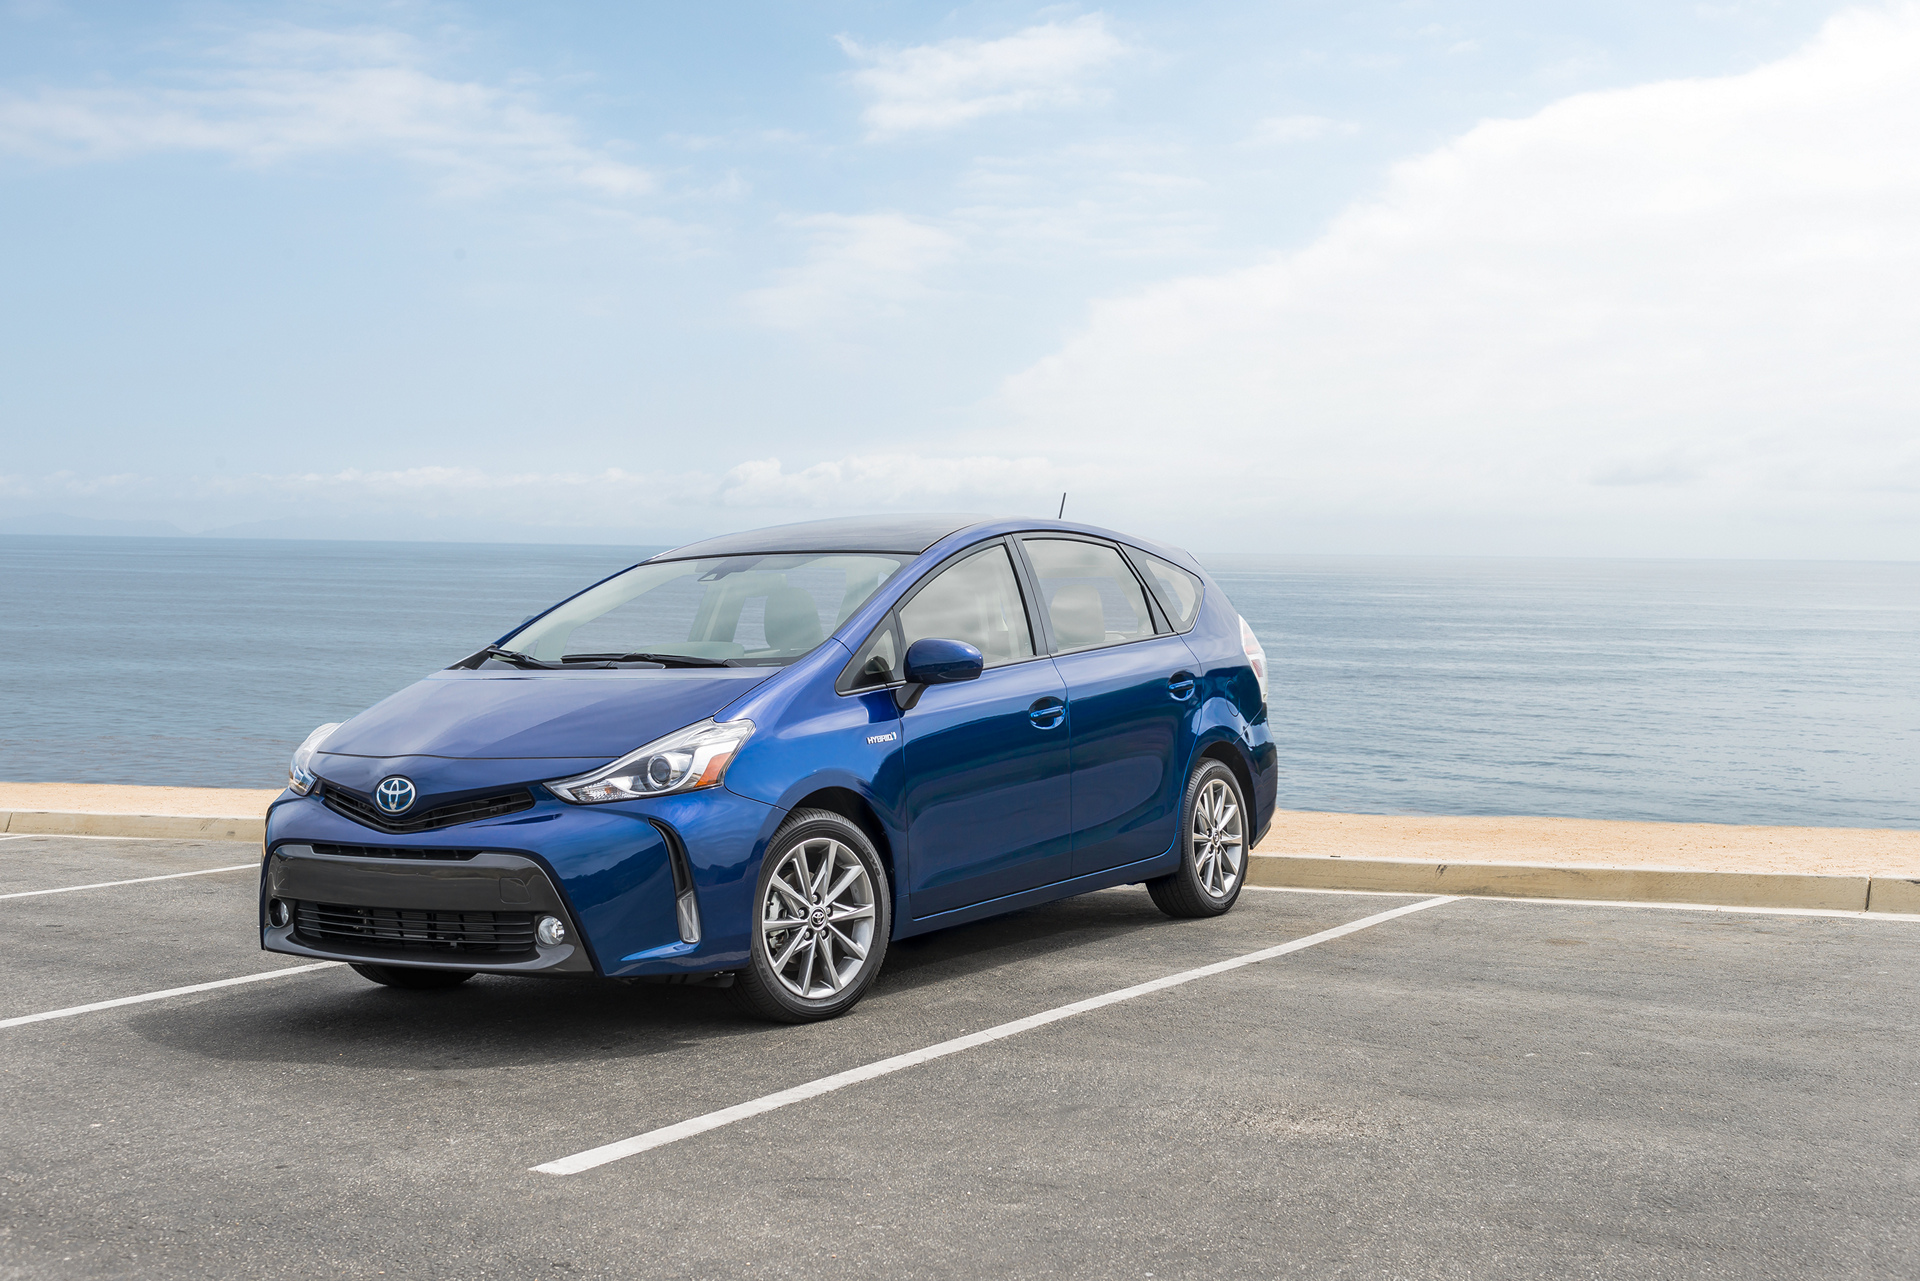 2016 toyota prius v review carrrs auto portal. Black Bedroom Furniture Sets. Home Design Ideas